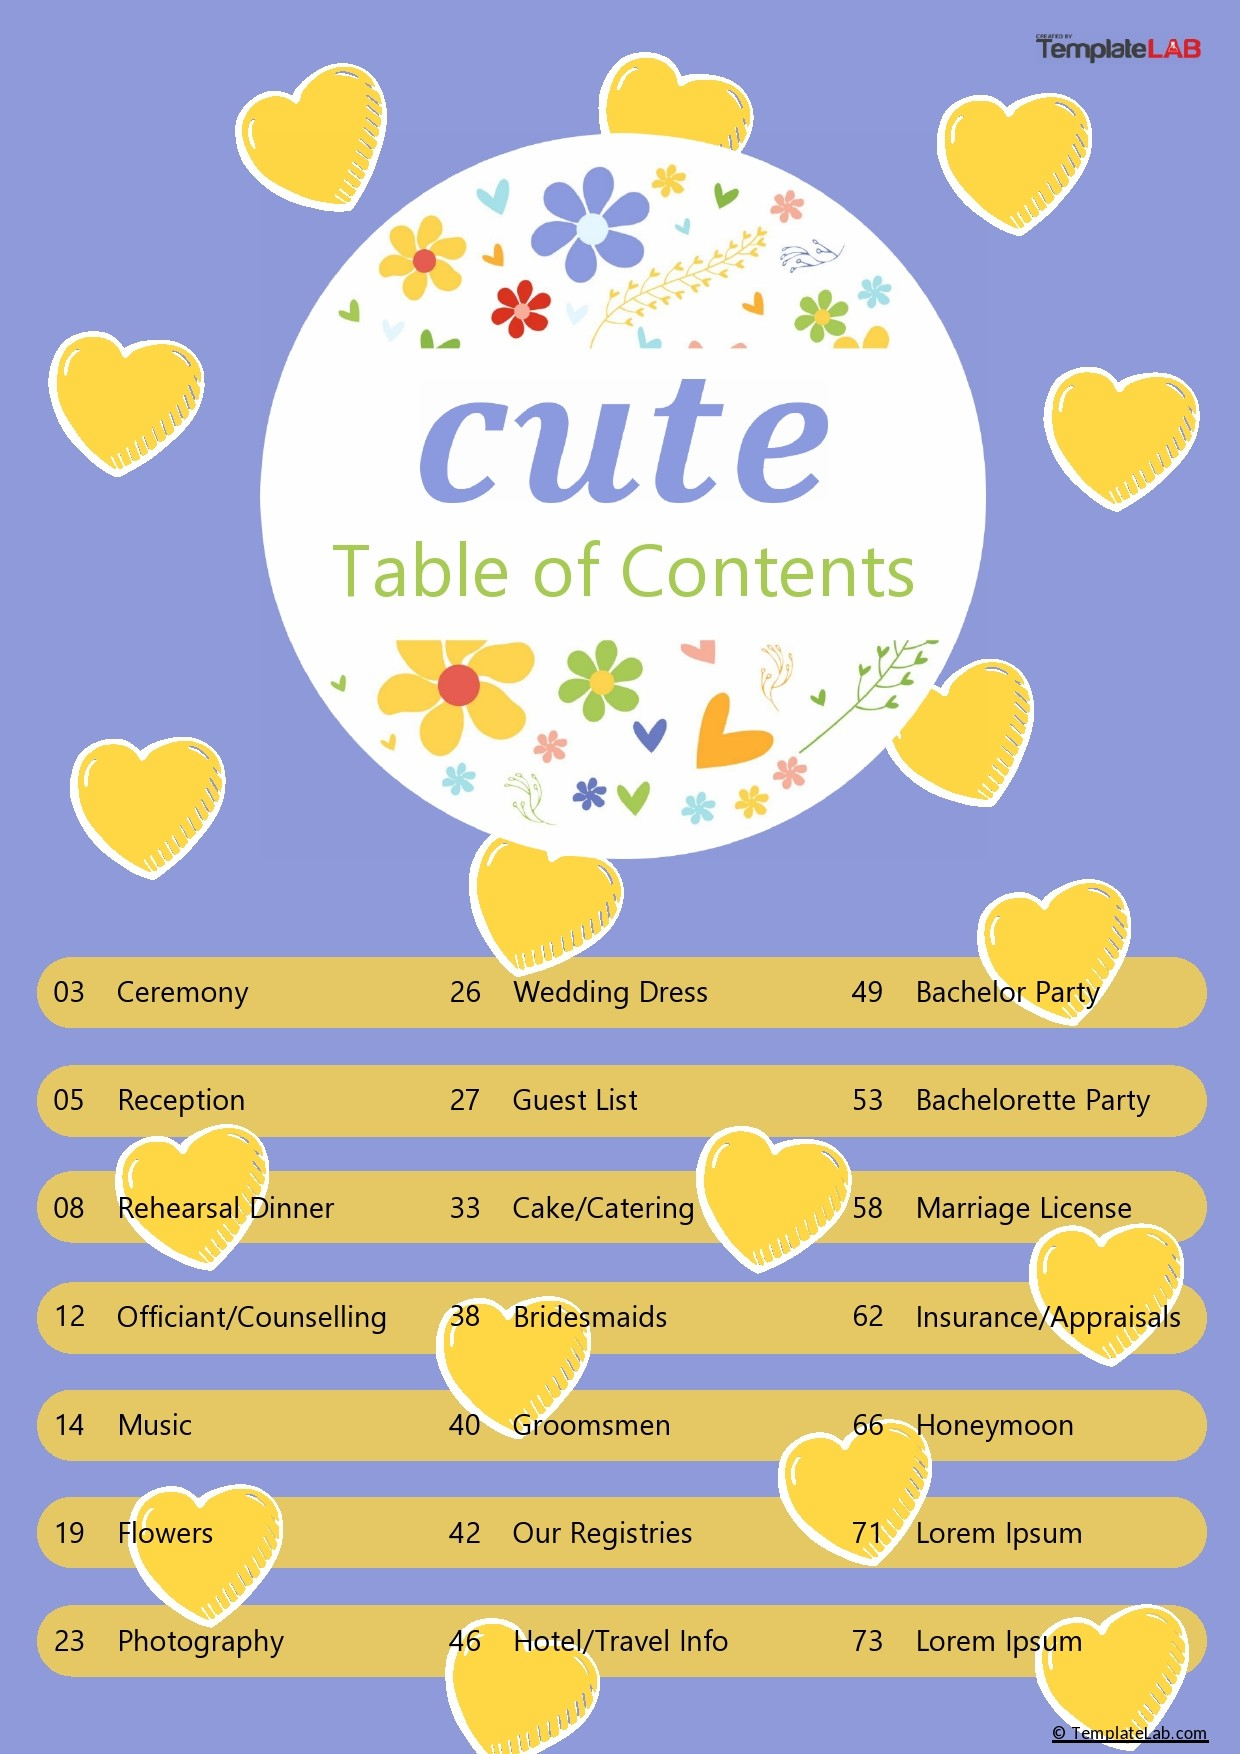 Free Cute Table of Content - TemplateLab.com